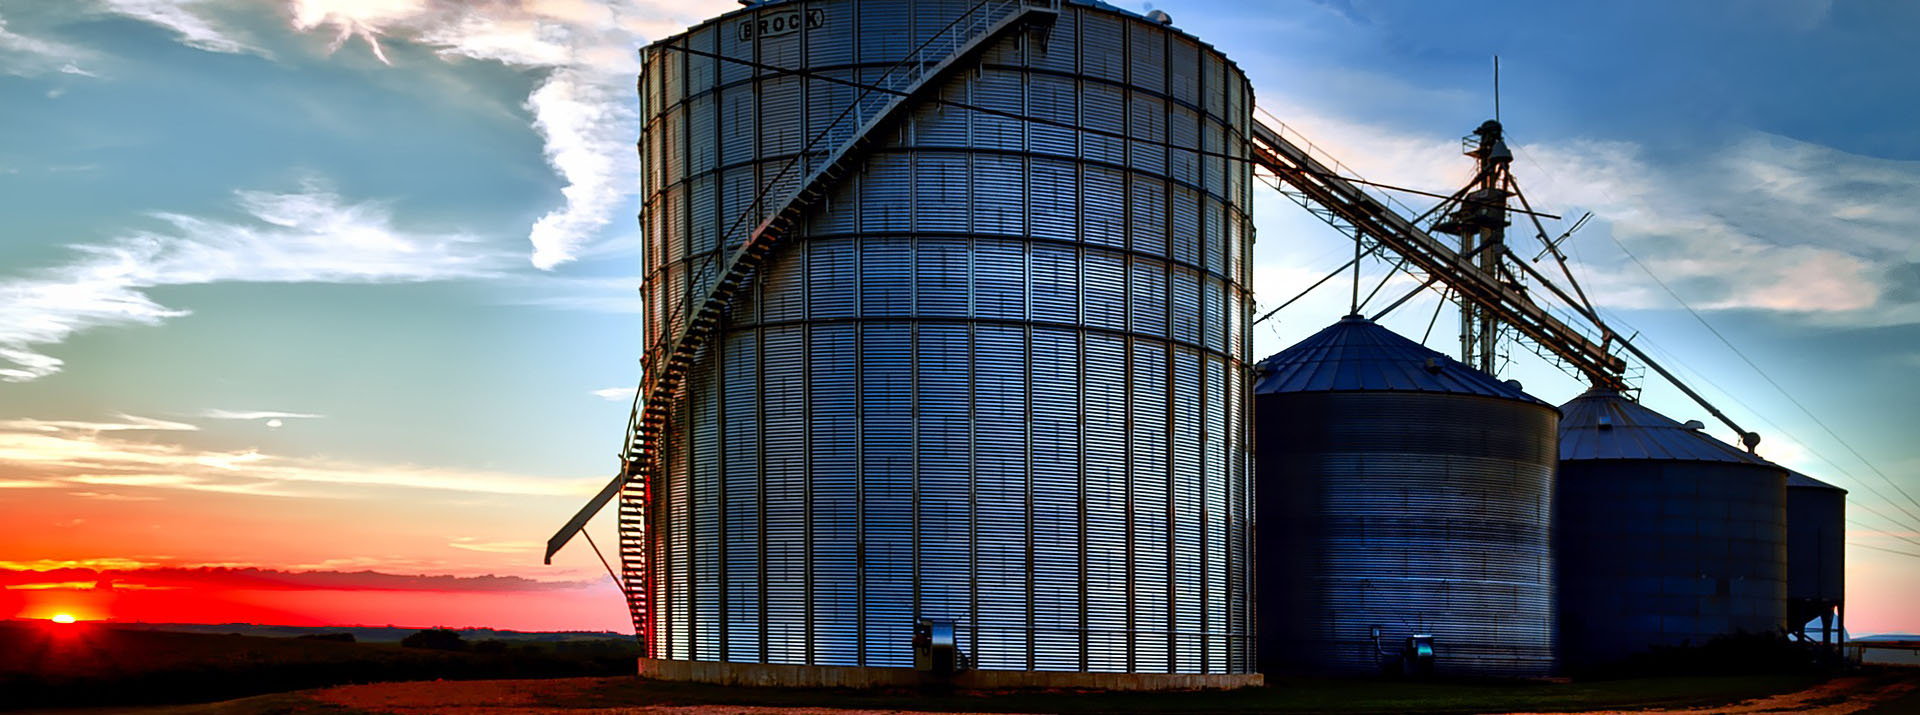 Grain silos in front of red sky